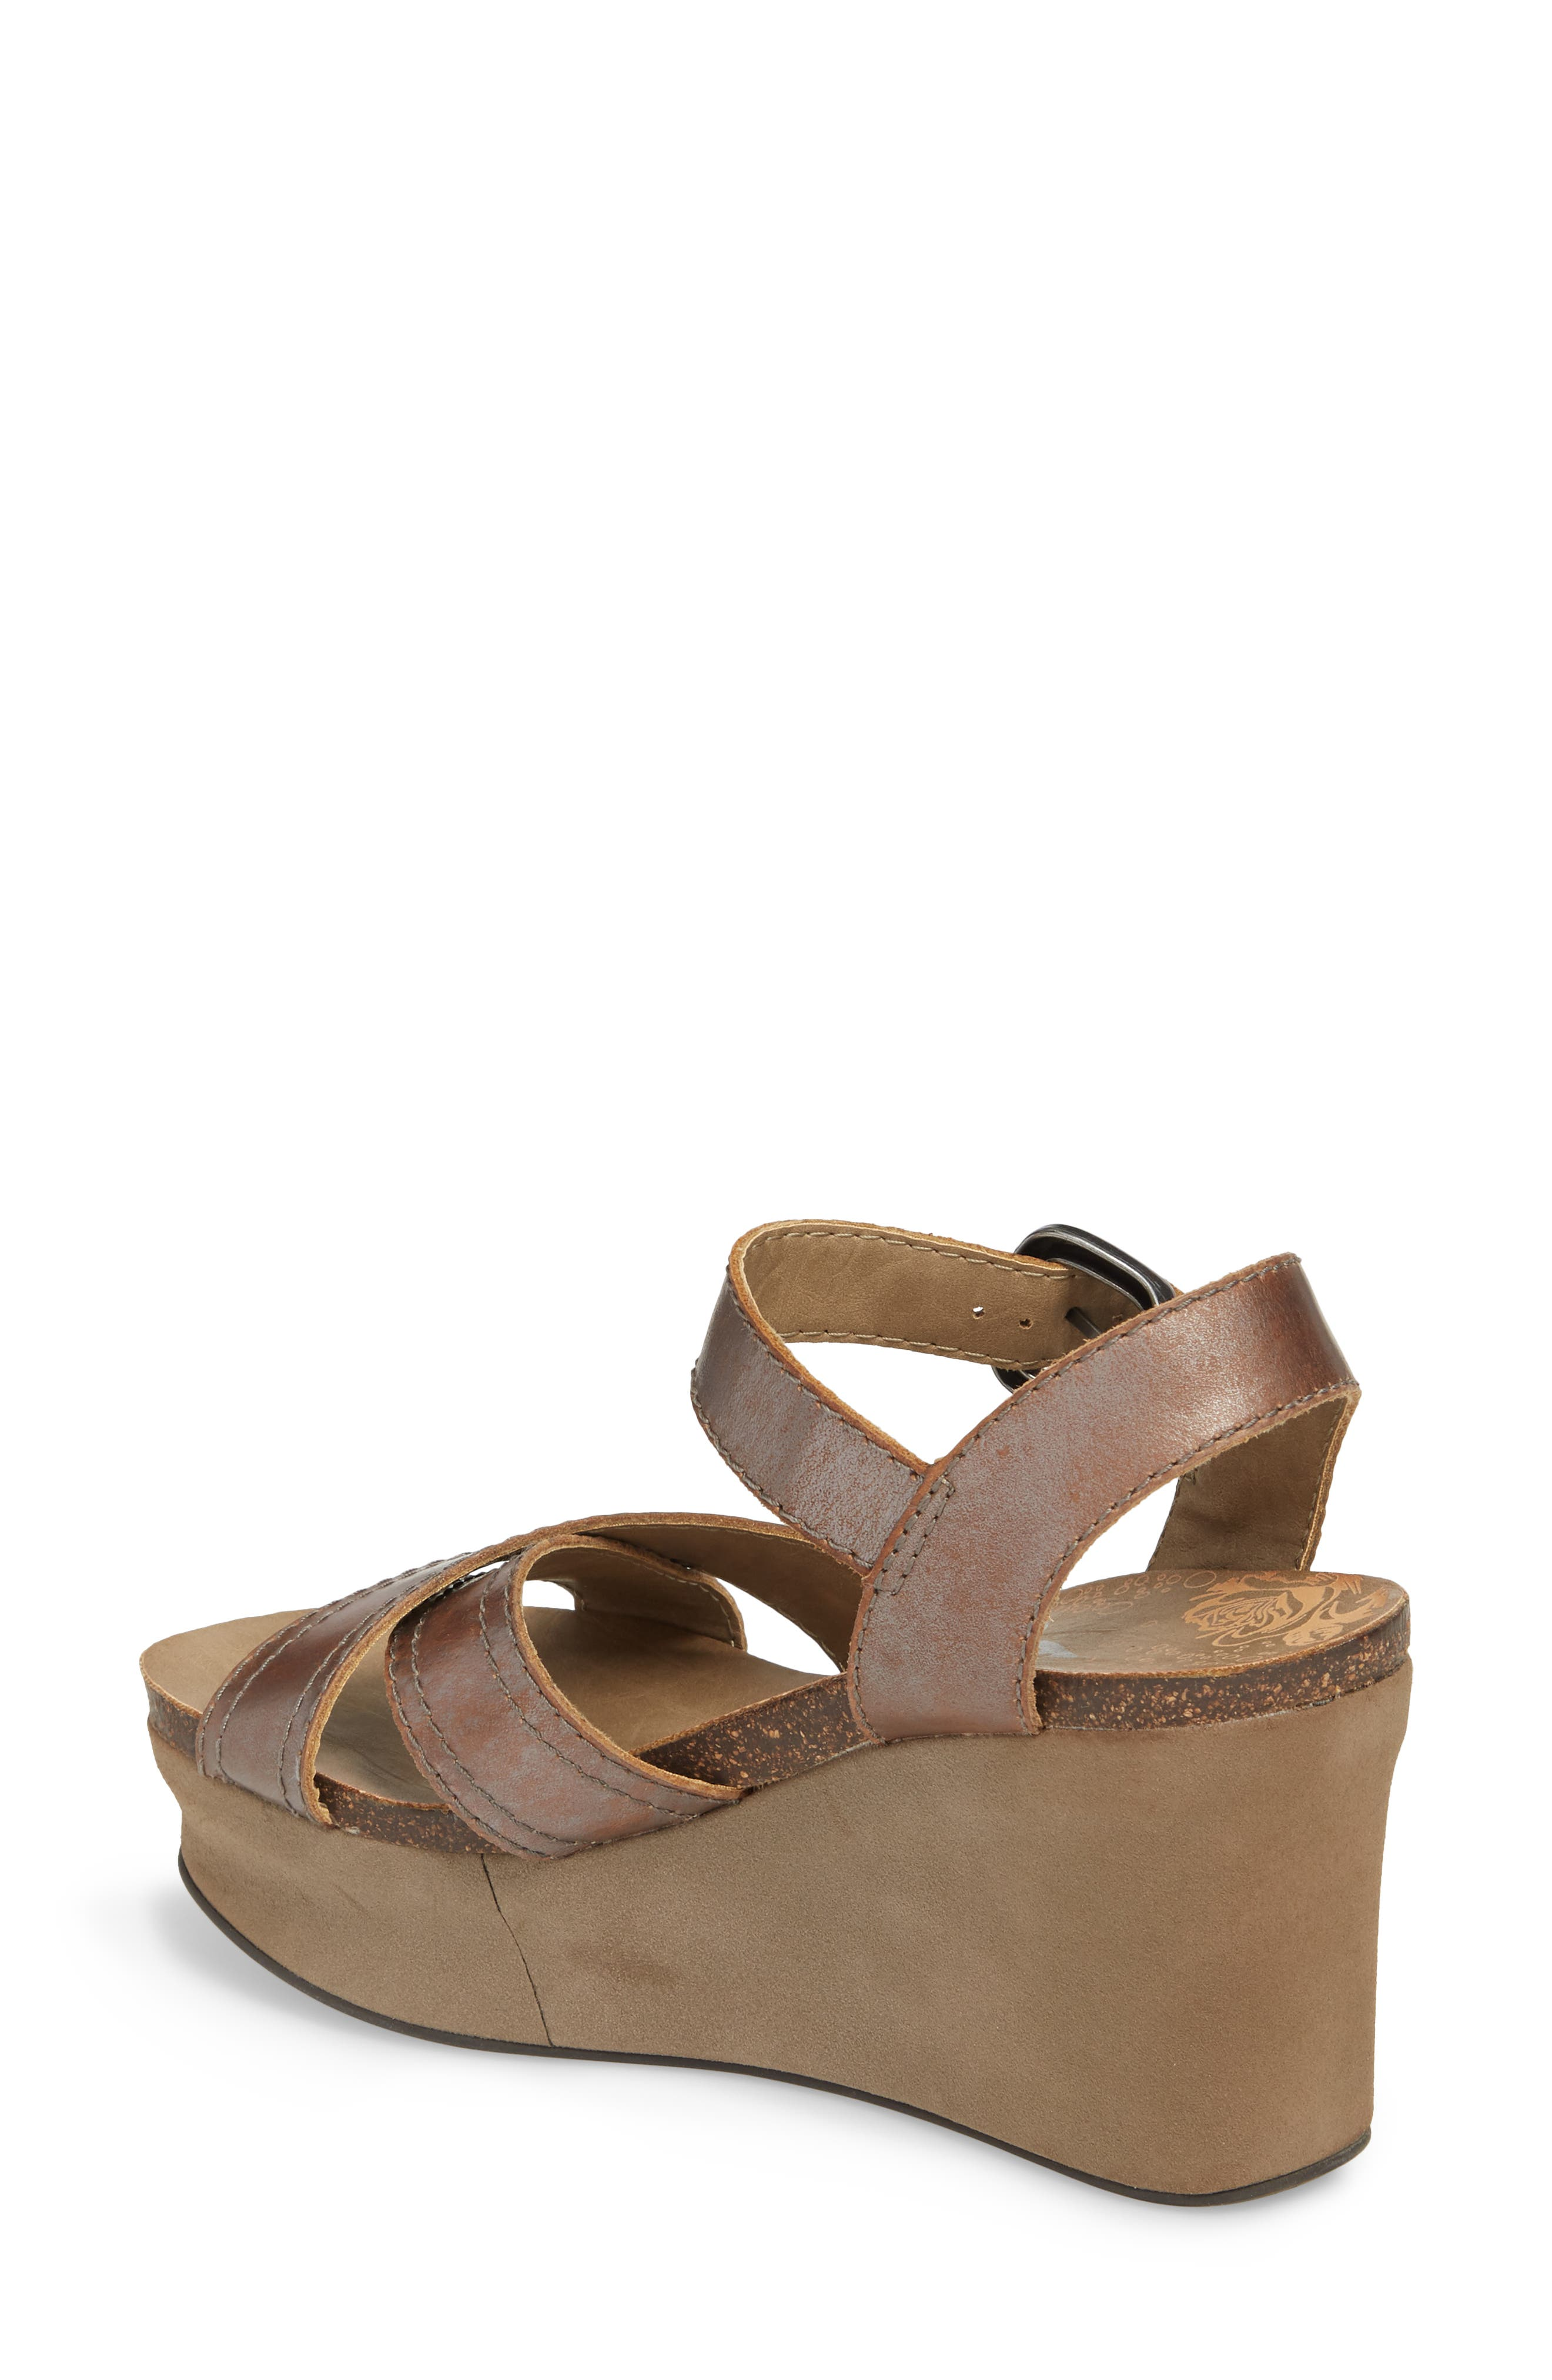 Bee Cave Wedge Sandal,                             Alternate thumbnail 2, color,                             Pewter Leather